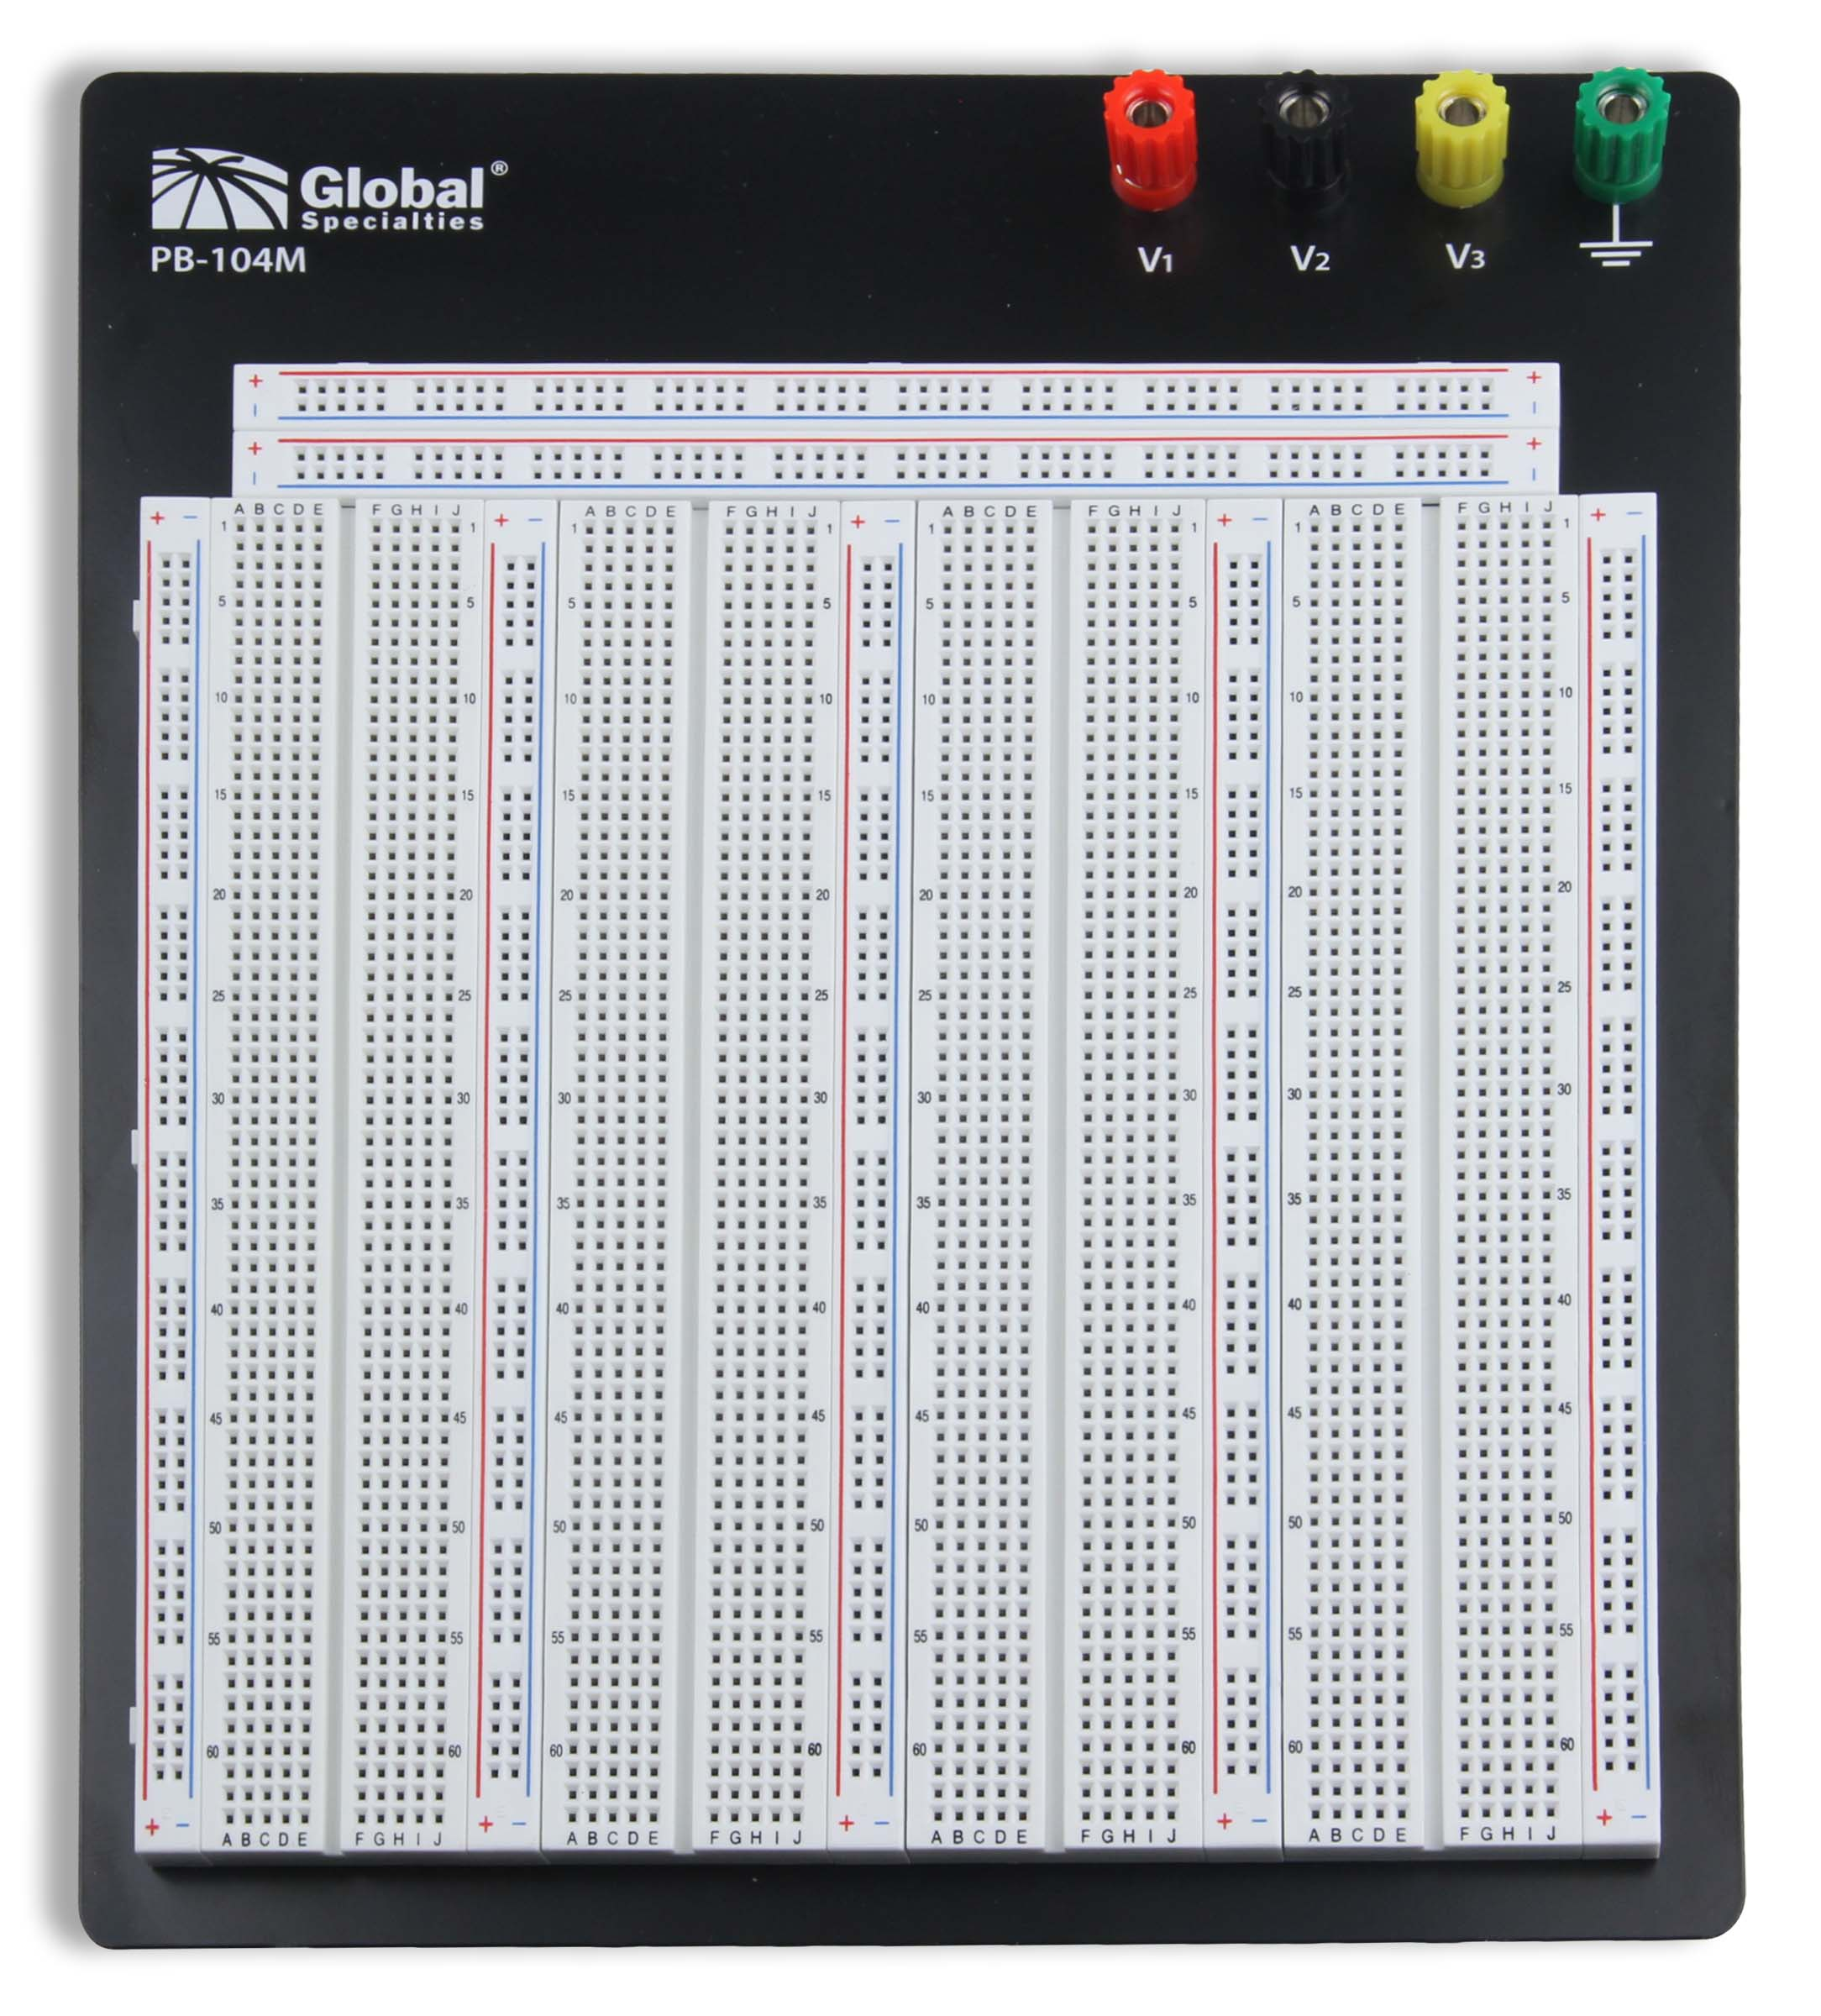 Global Specialties PB-104M Externally Powered 3220 Tie-Point Breadboard Photo